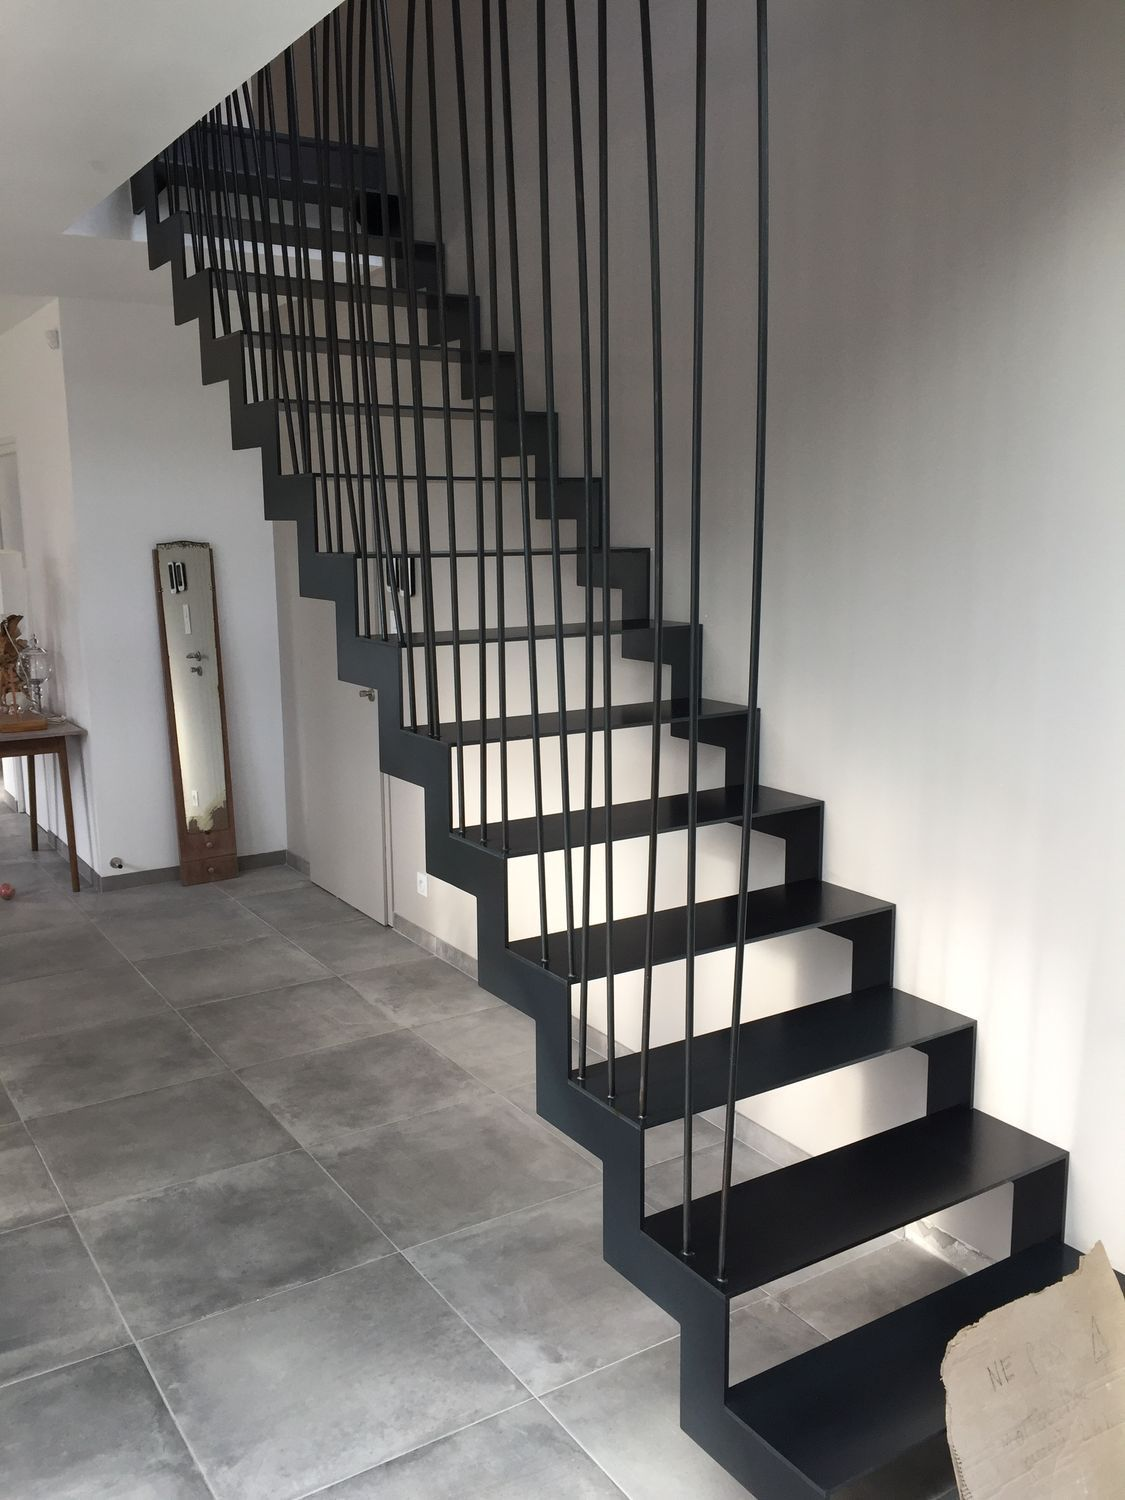 Escaliers Metalliques Droits Simples Et Elances Fabric Metal En 2020 Idees Escalier Escalier Metallique Escalier